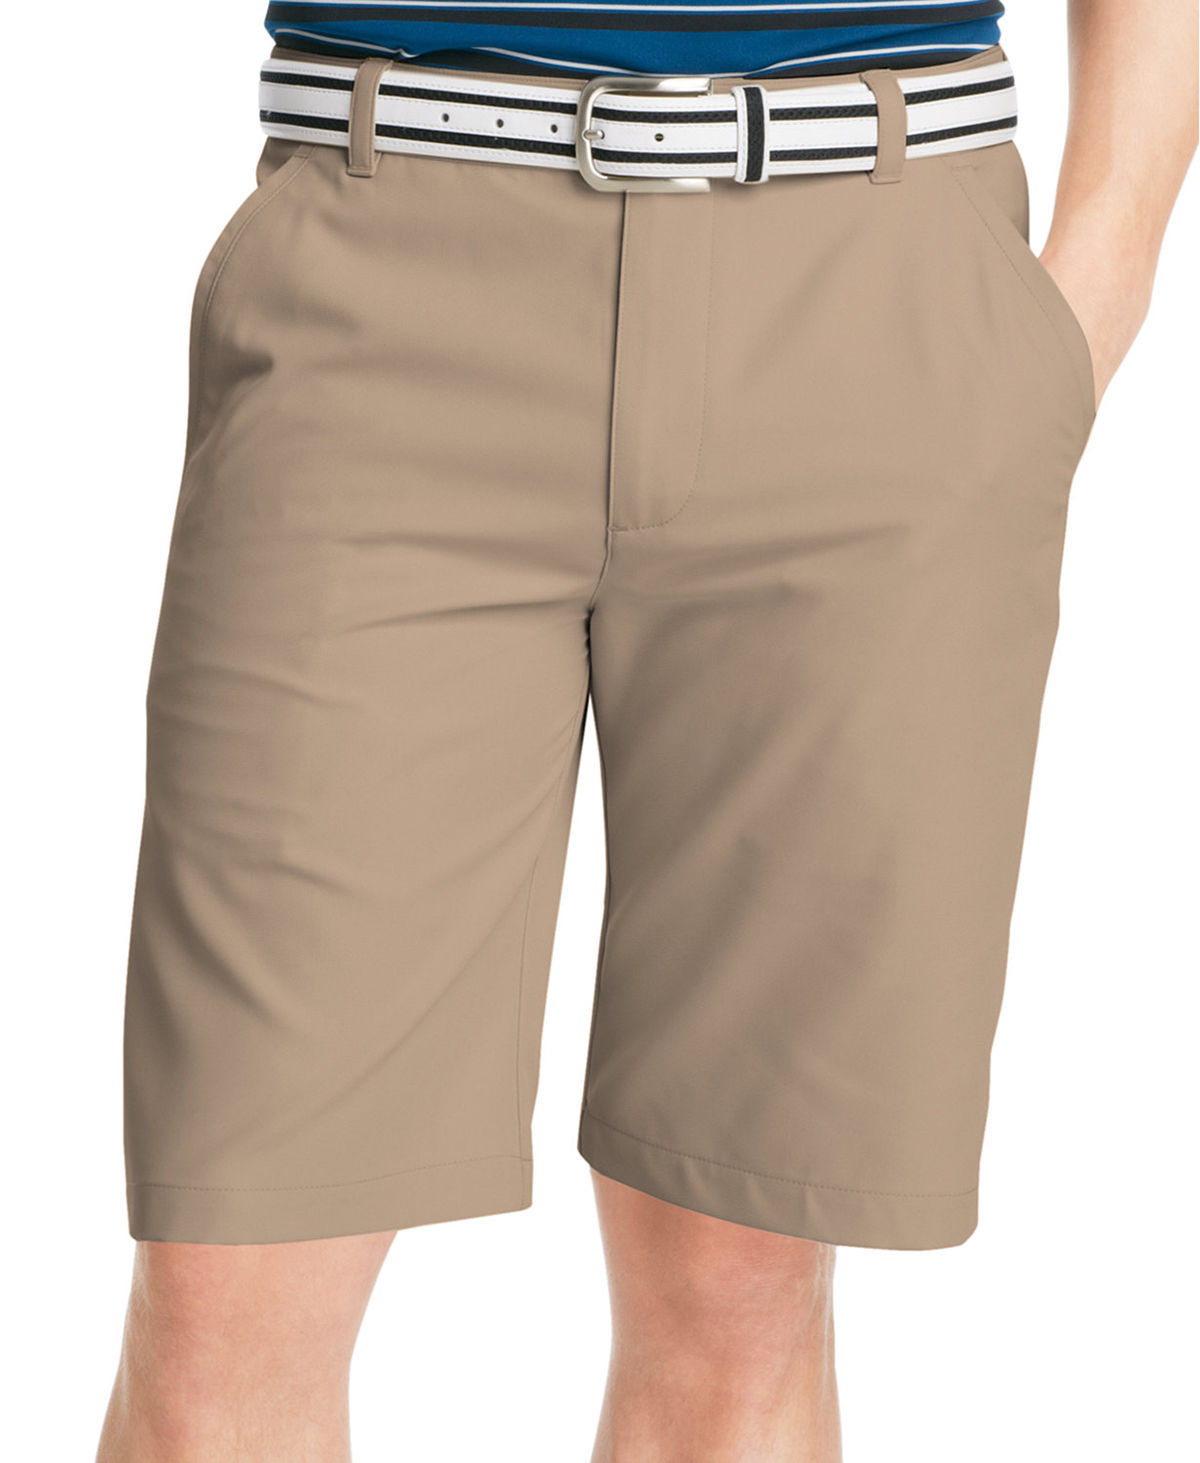 NEW MENS IZOD THE DRIVER COOL DRY WRINKLE FREE MICROFIBER WICKING SOFT SHORTS